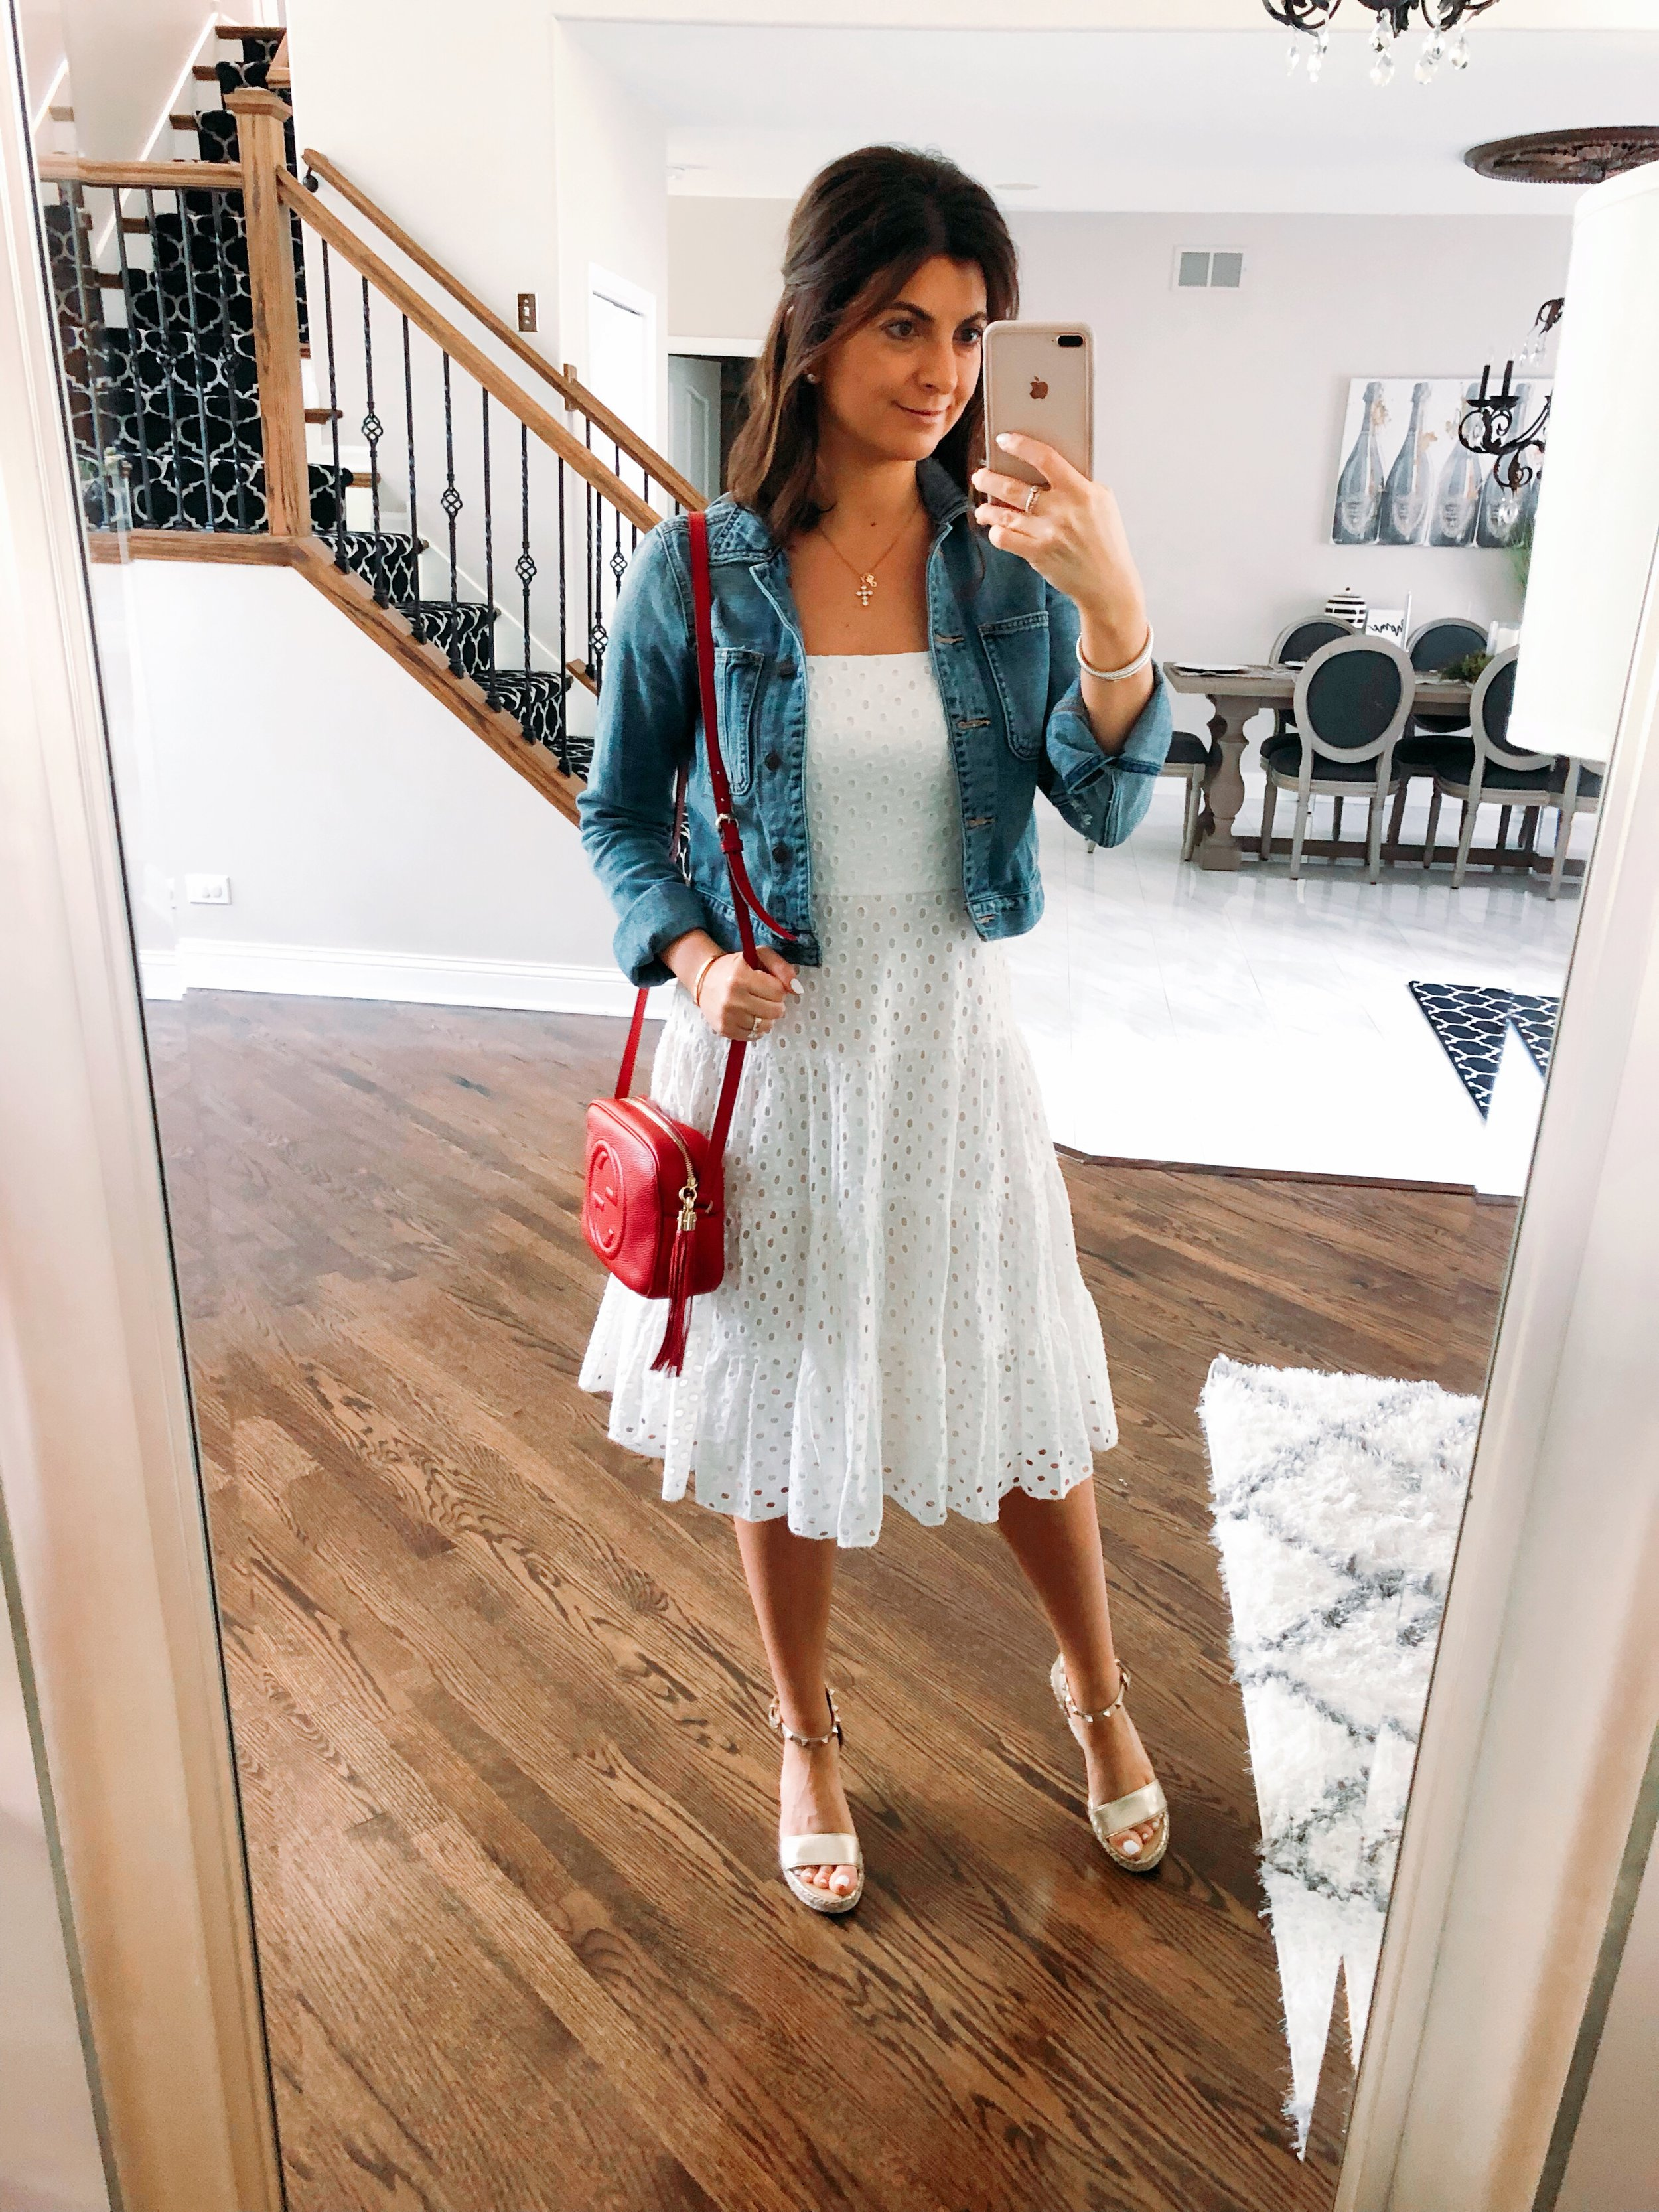 1901 White Eyelet Dress from Nordstrom | Distressed Denim Jacket from Abercrombie | Red Soho Disco Bag from Gucci | Marc Fisher Wedges from DSW